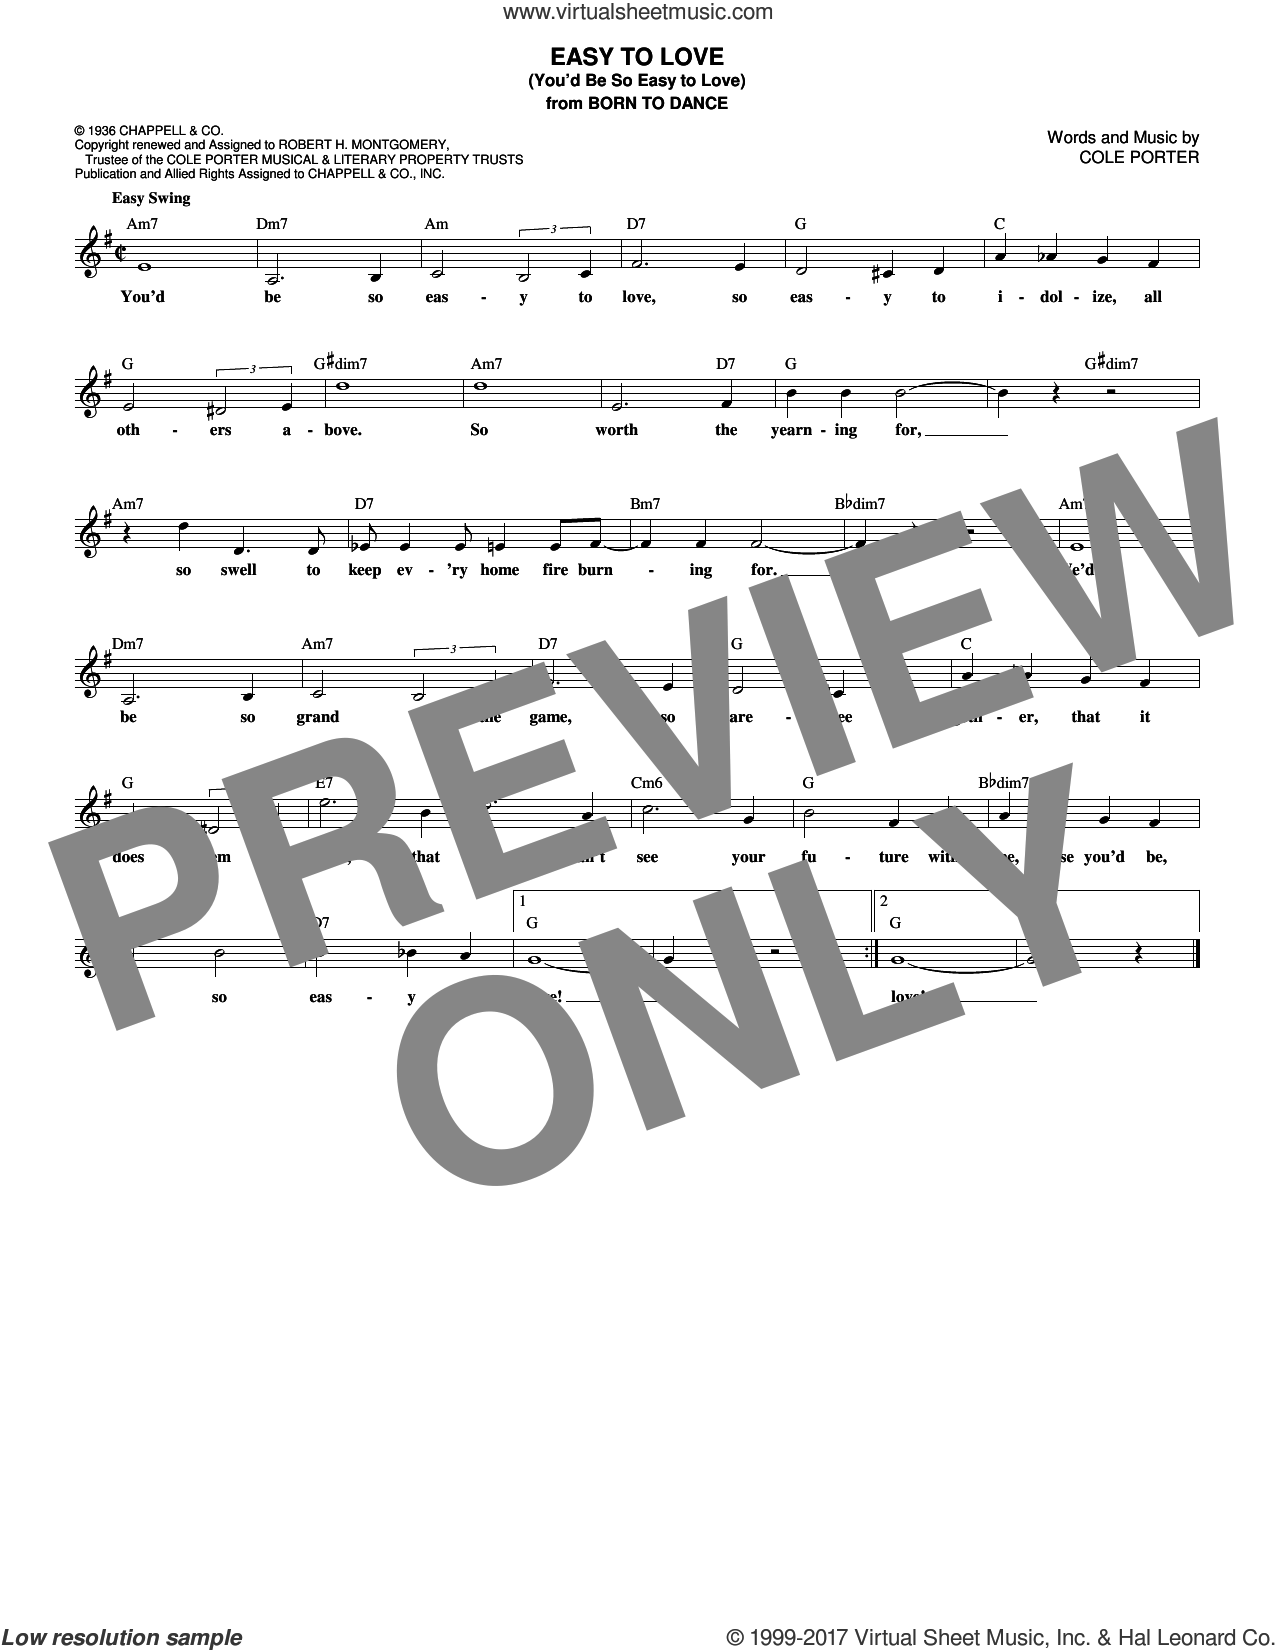 Easy To Love (You'd Be So Easy To Love) sheet music for voice and other instruments (fake book) by Cole Porter, intermediate skill level